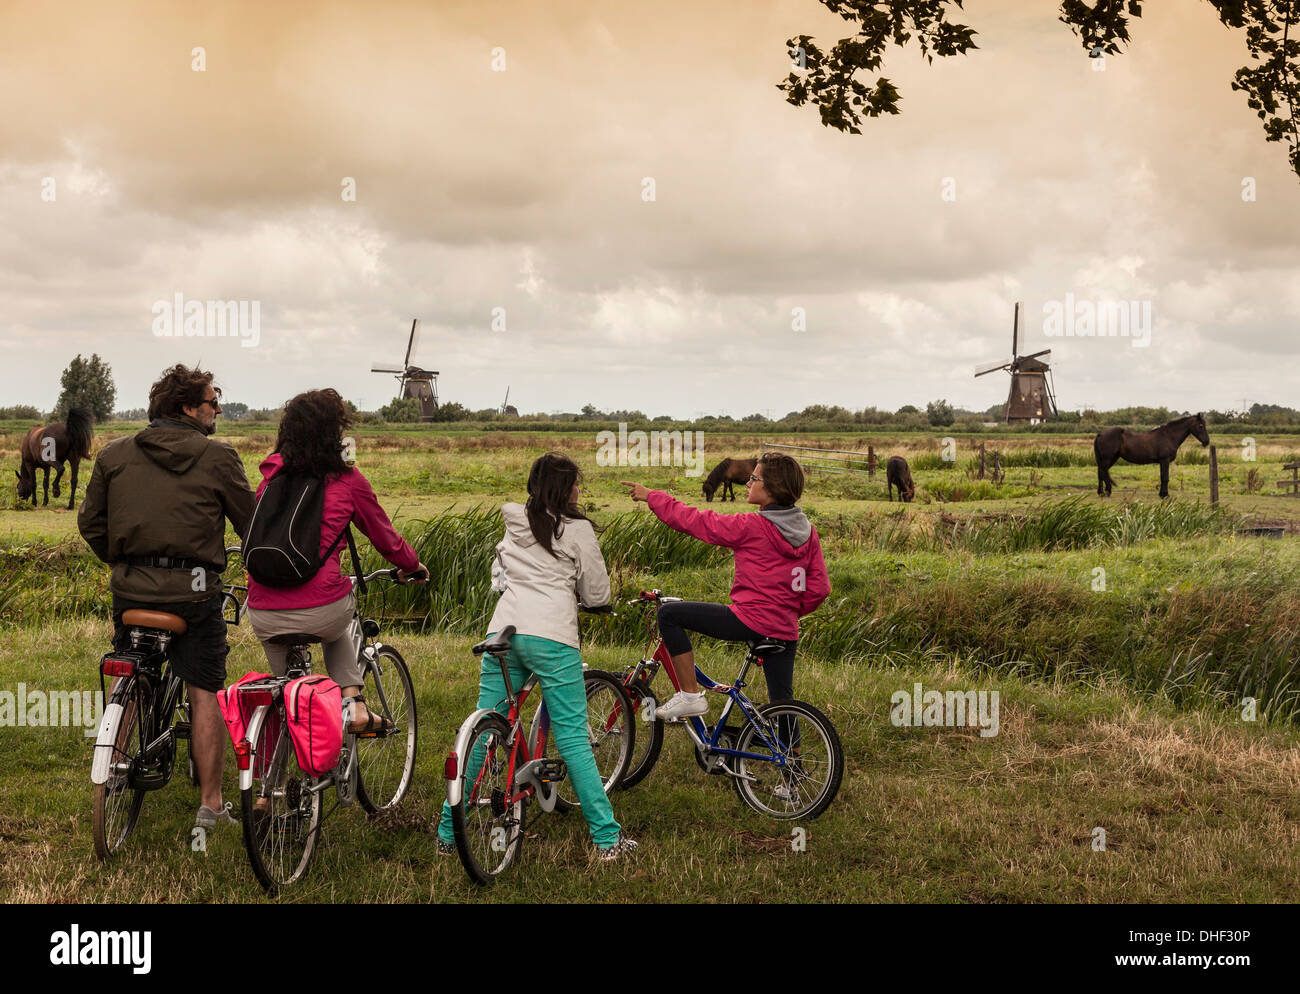 Family with two children on bikes, Kinderdijk, Olanda, Amsterdam - Stock Image